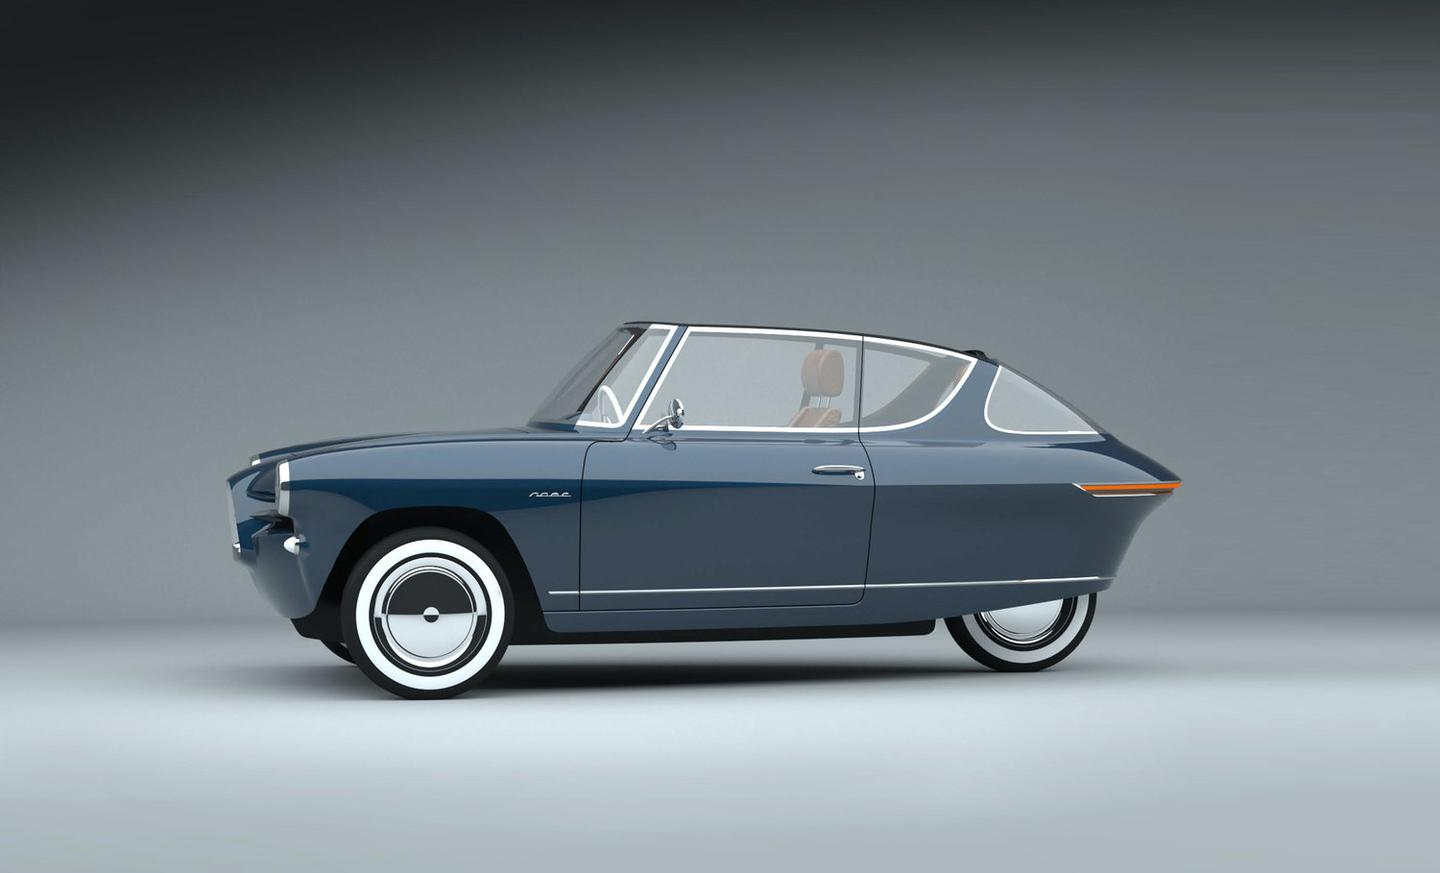 Prototype drawings like this one show both a cabriolet and a closed-top version of the Nobe